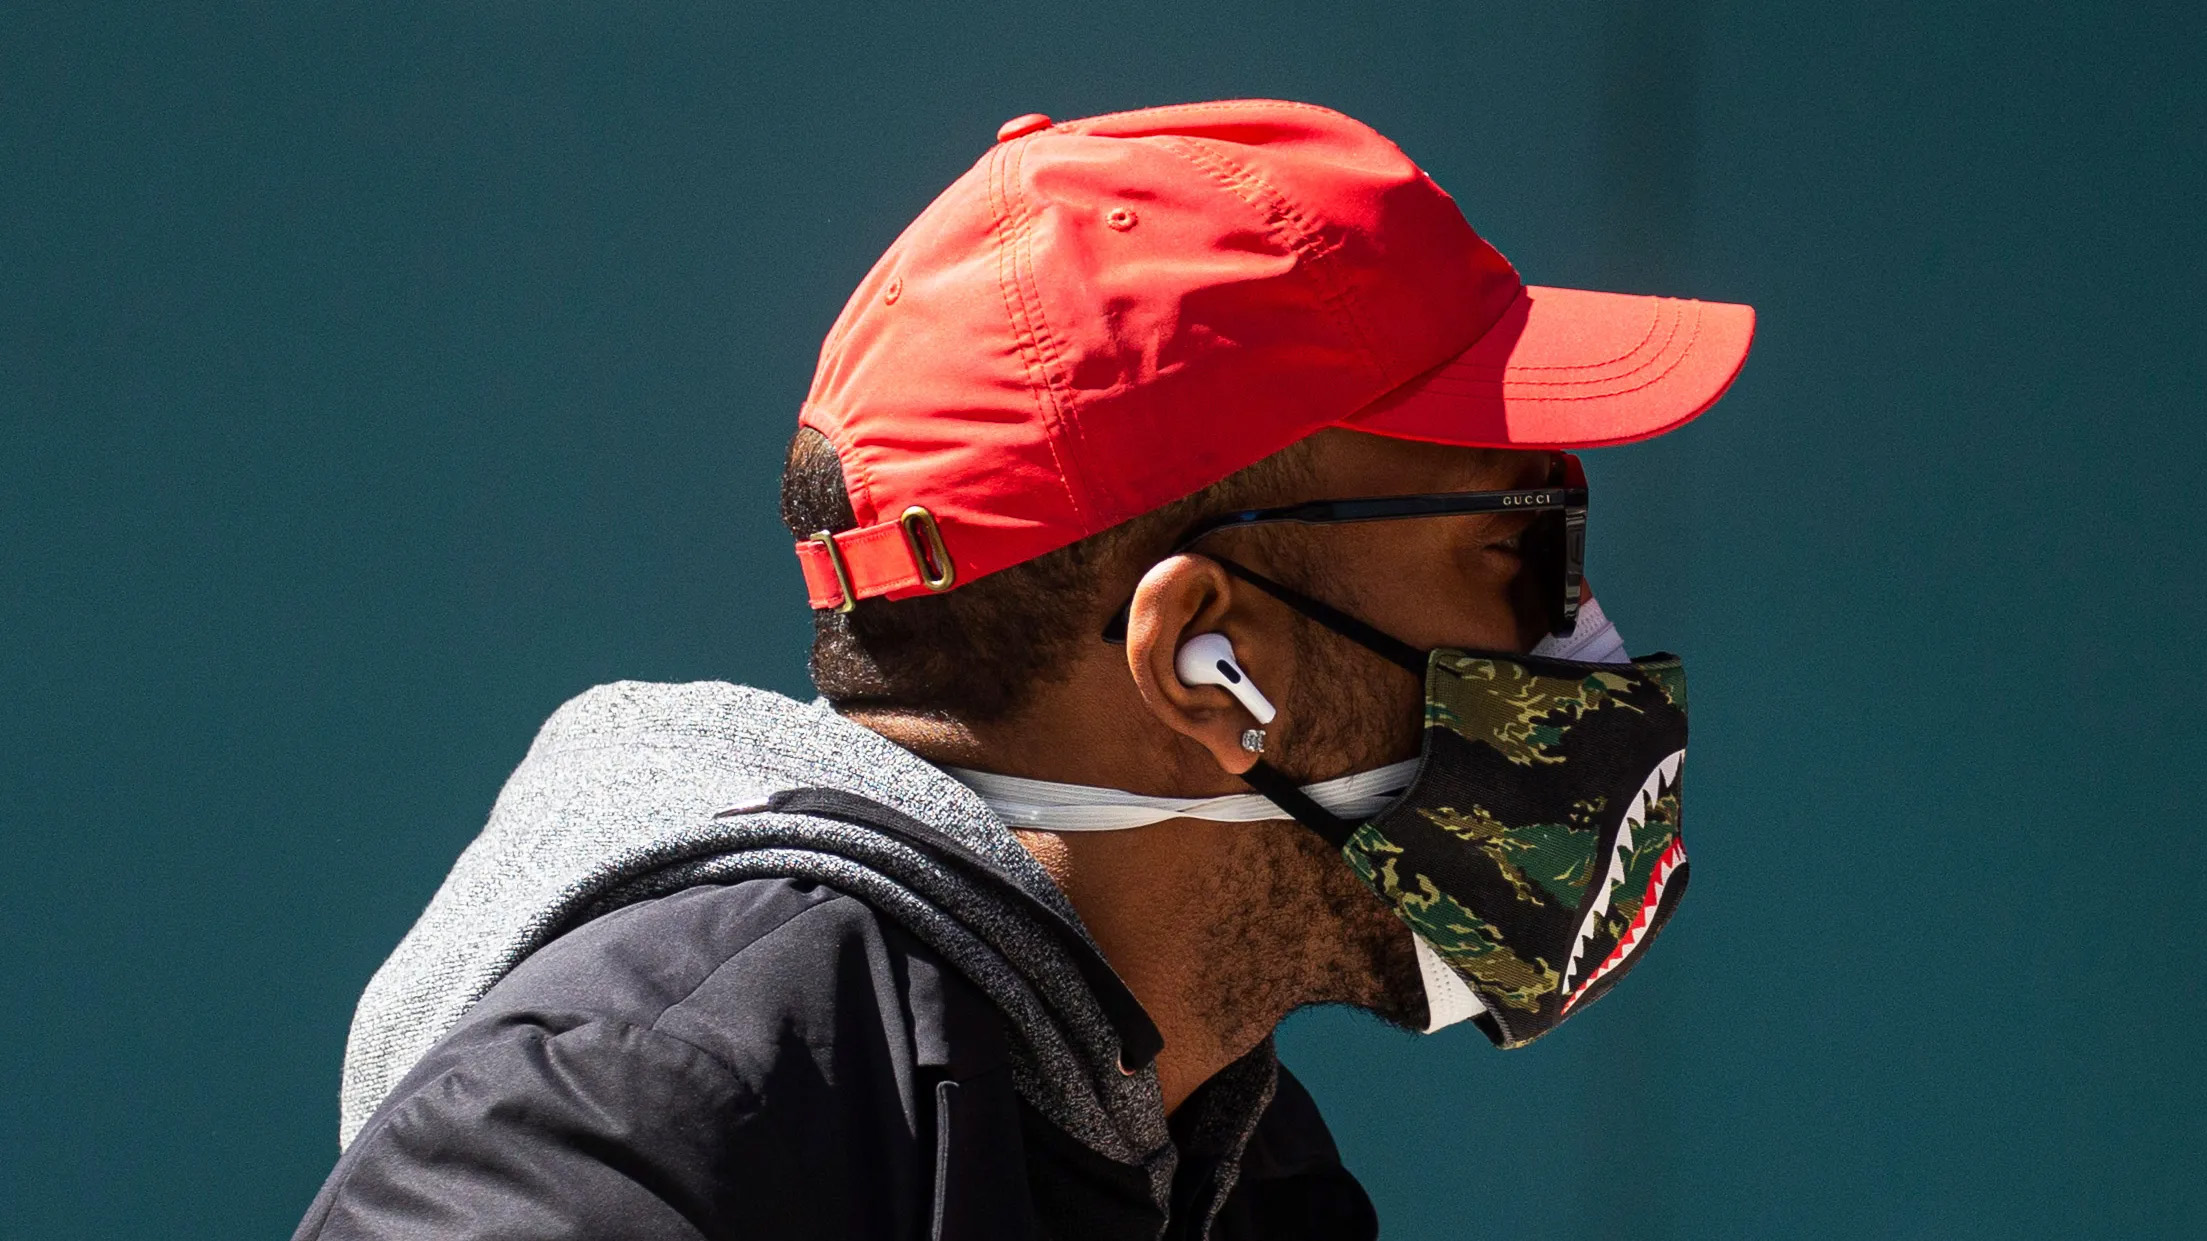 Double masking can be strong to protect people from COVID-19: Study